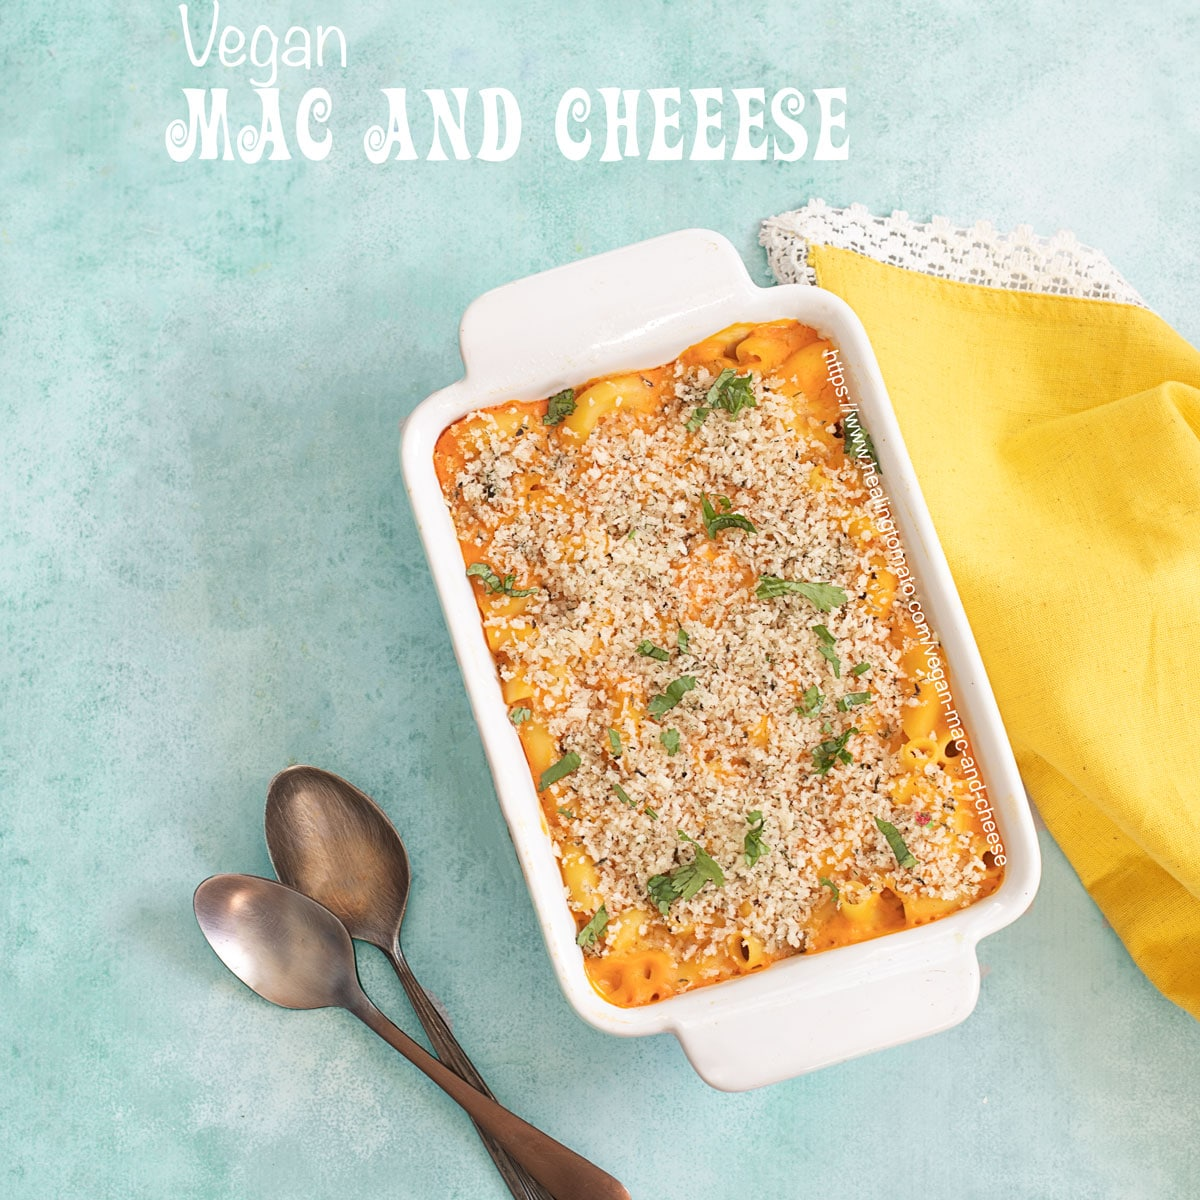 Top view of a white casserole dish on blue background and a yellow cloth on the side. Casserole dish is filled with vegan Mac and cheese